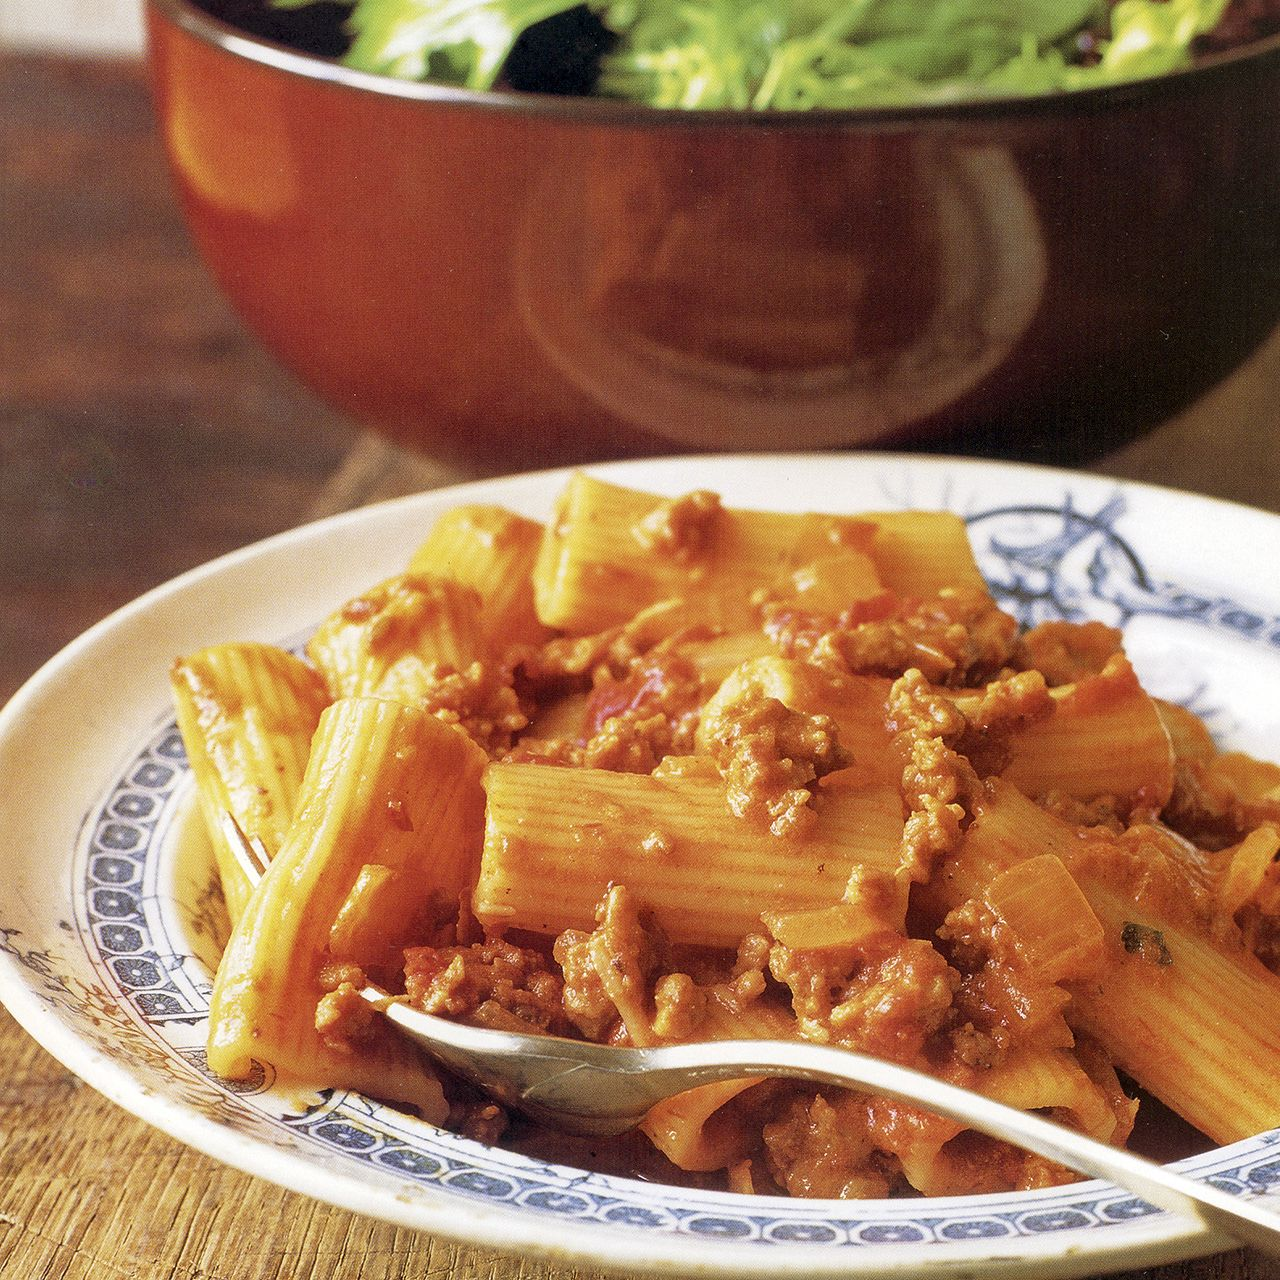 Rigatoni with Sausage and Tomato Cream Sauce